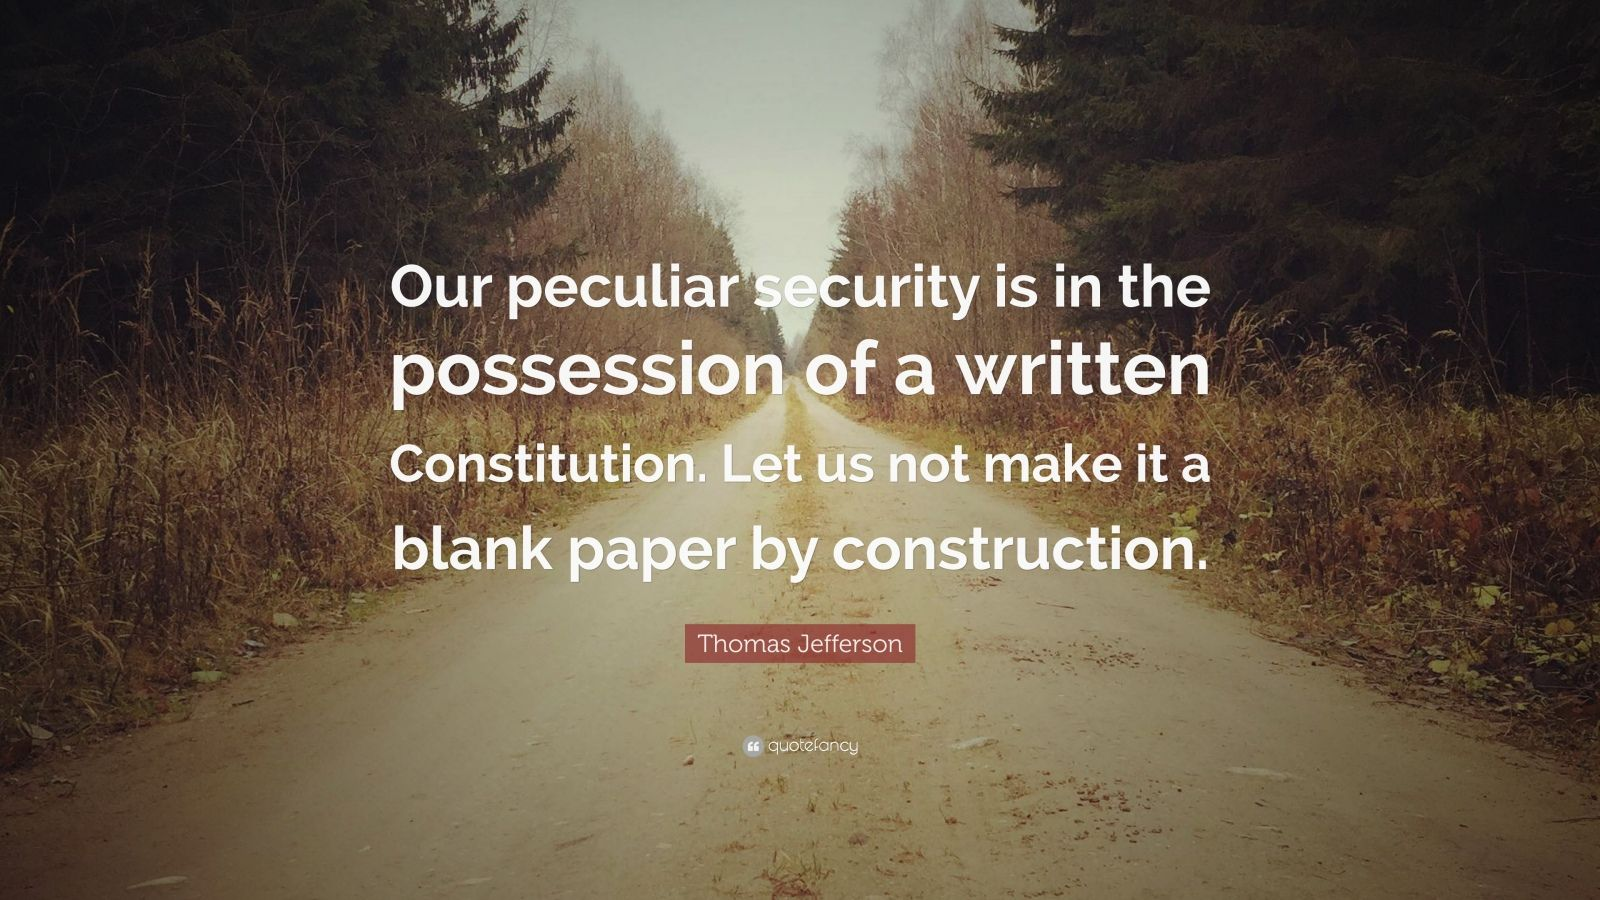 """Thomas Jefferson Quote: """"Our peculiar security is in the possession of a written Constitution. Let us not make it a blank paper by construction."""""""